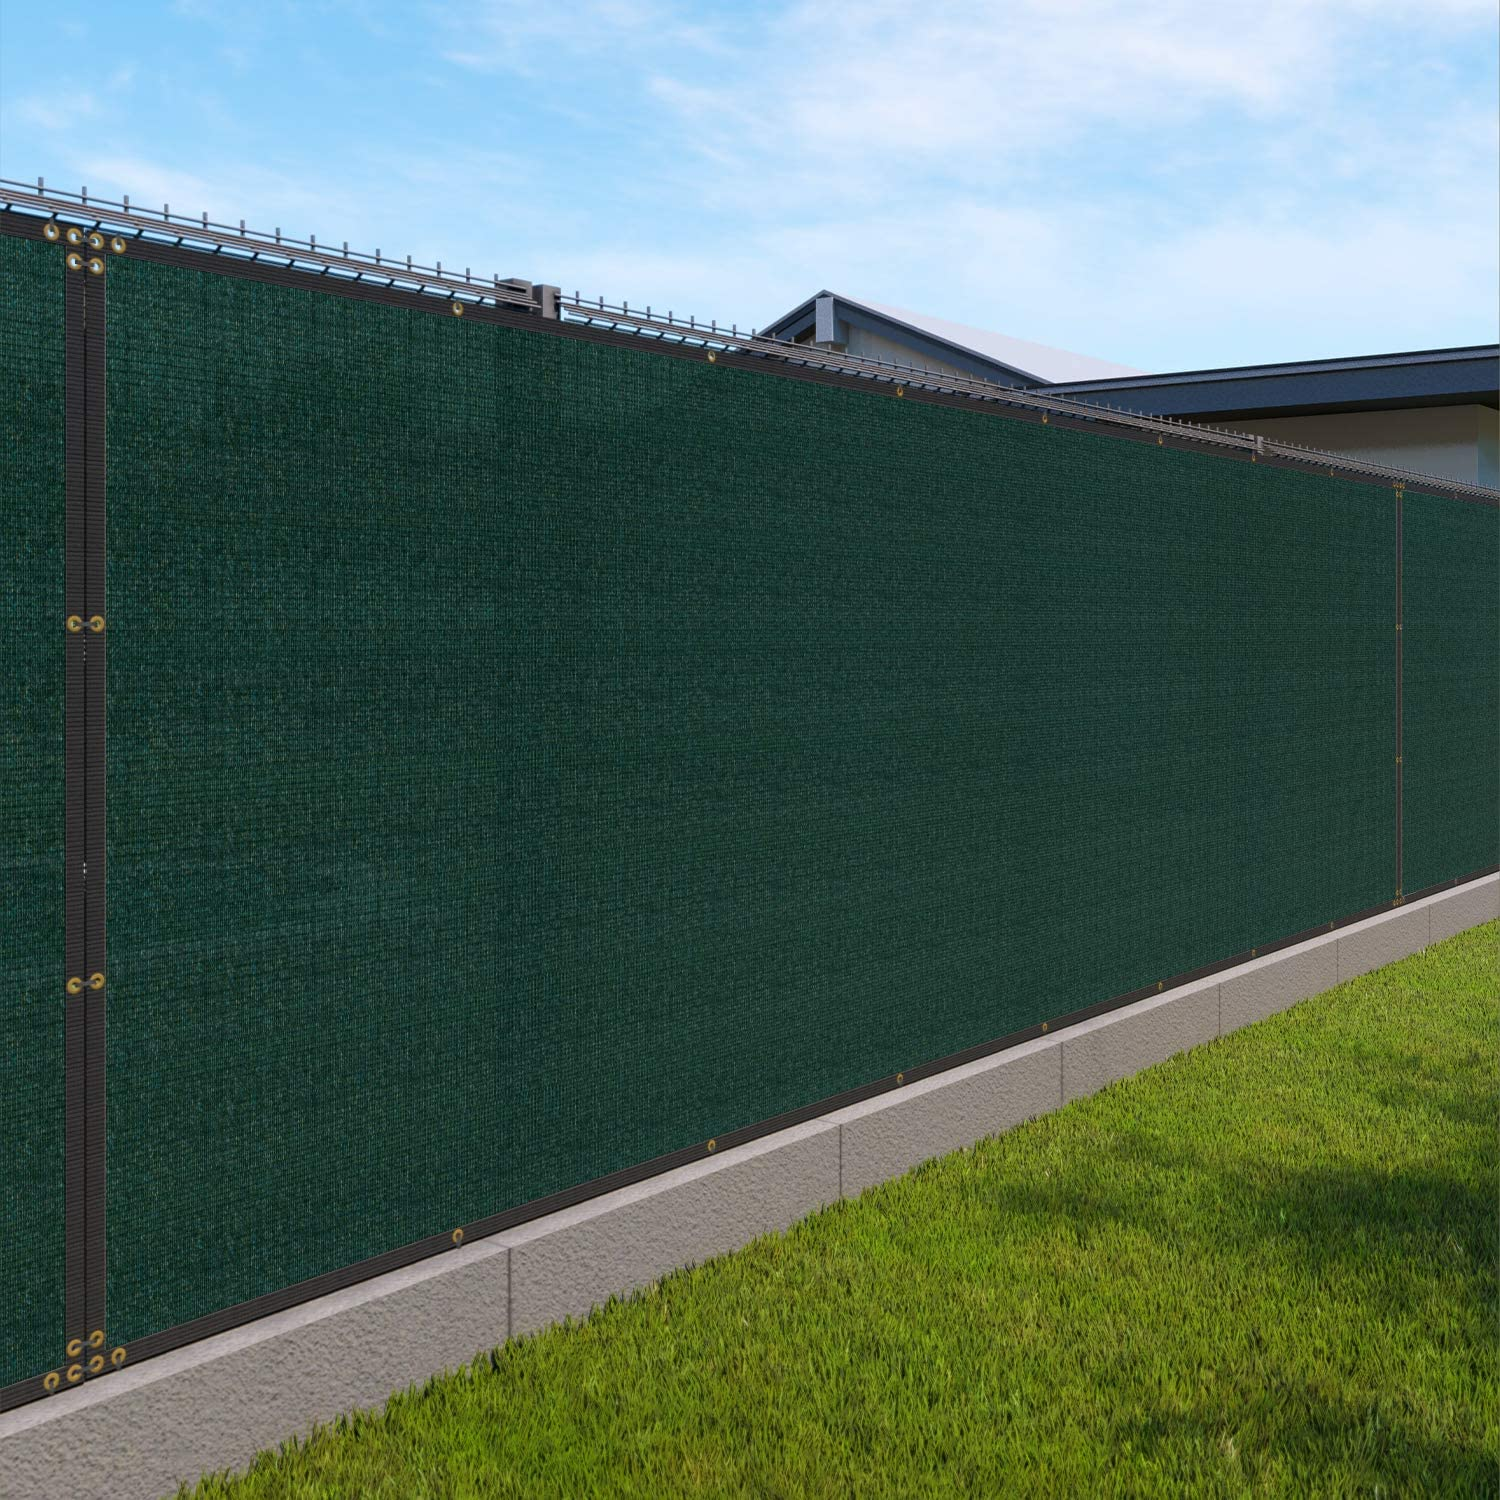 4 X 25 Privacy Fence Screen In Green With Brass Grommet 85 Blockage Windscreen Outdoor Mesh Fencing Cover Netting 150gsm Fabric Custom Outdoor Decorative Fences Garden Outdoor